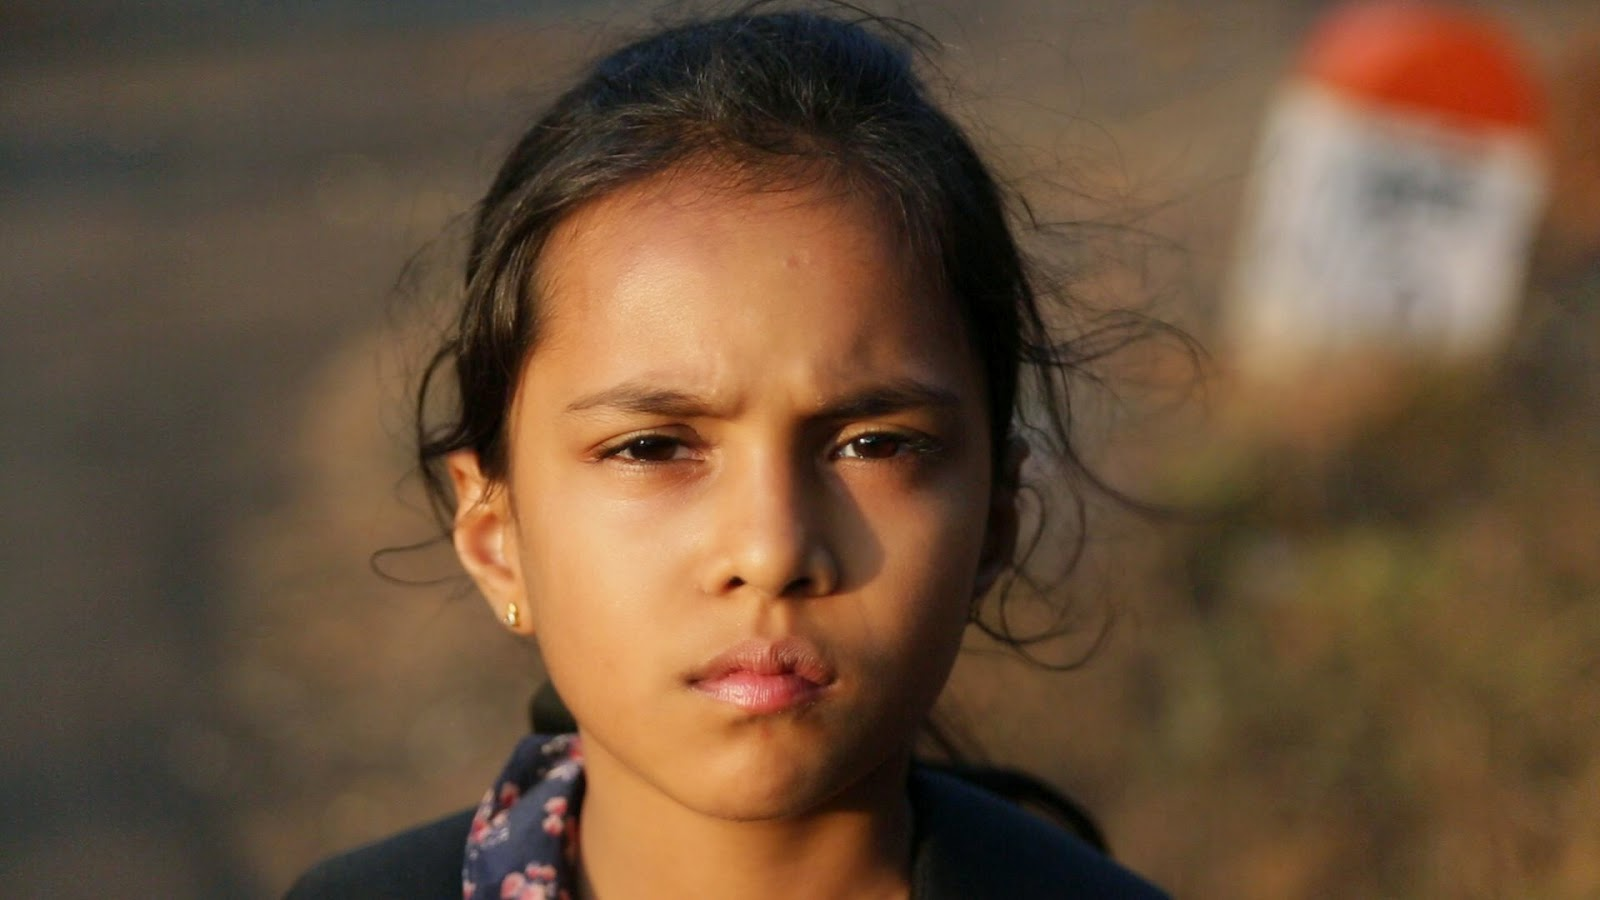 Diya, Barefoot to Goa, Brief character Analysis, Directed by Praveen Morchhale